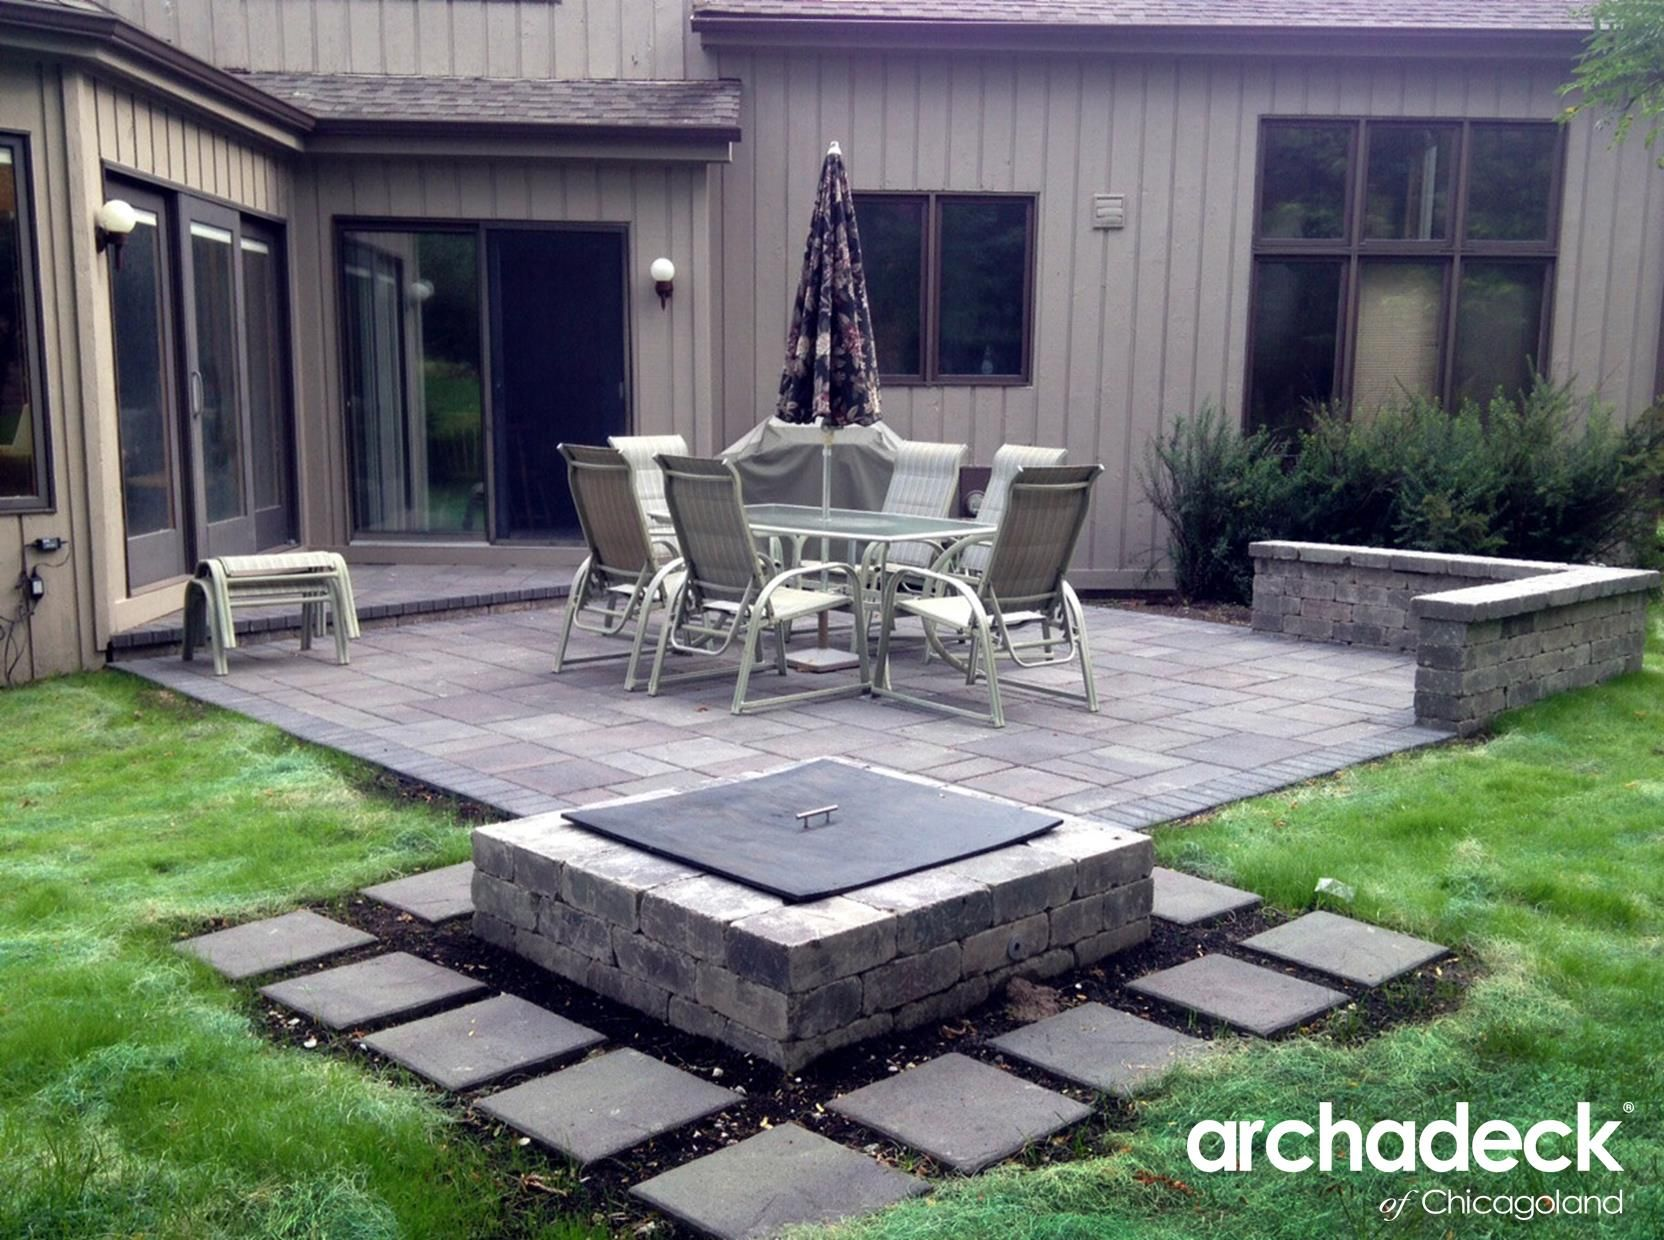 Belgard Patio with Square Fire Pit by Chicago Suburb patio builder